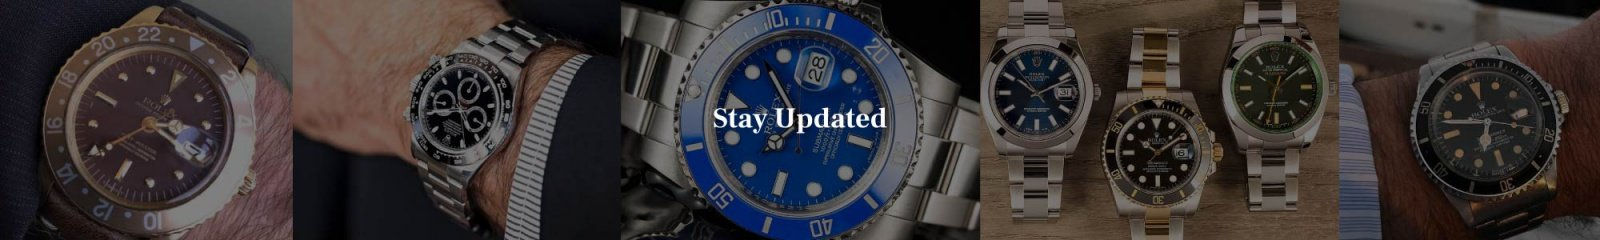 Stay up to date on vintage Rolex news with Bob's Watches